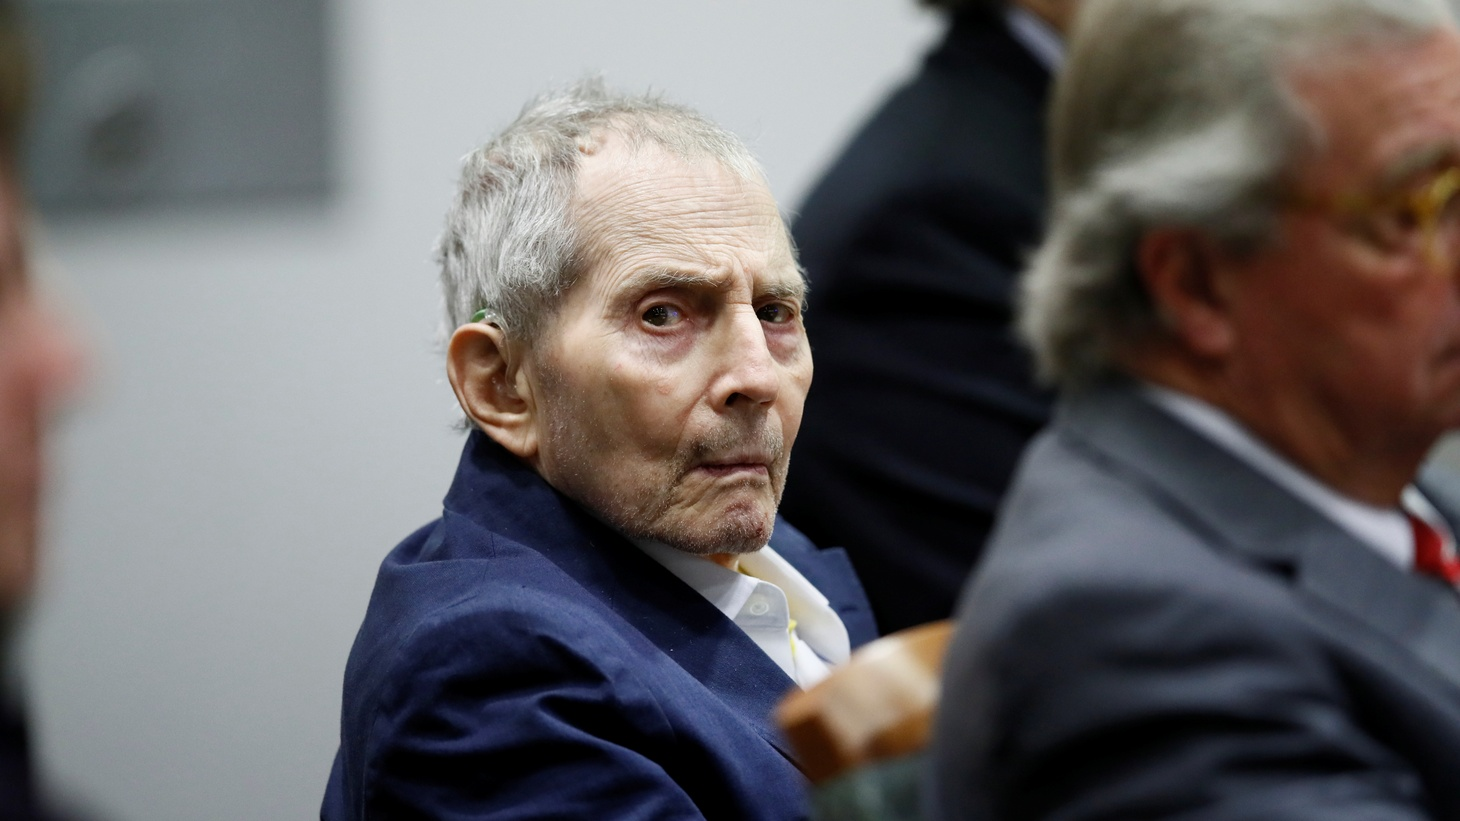 Robert Durst sits for opening statements in his murder trial in Los Angeles, California, U.S., March 4, 2020.